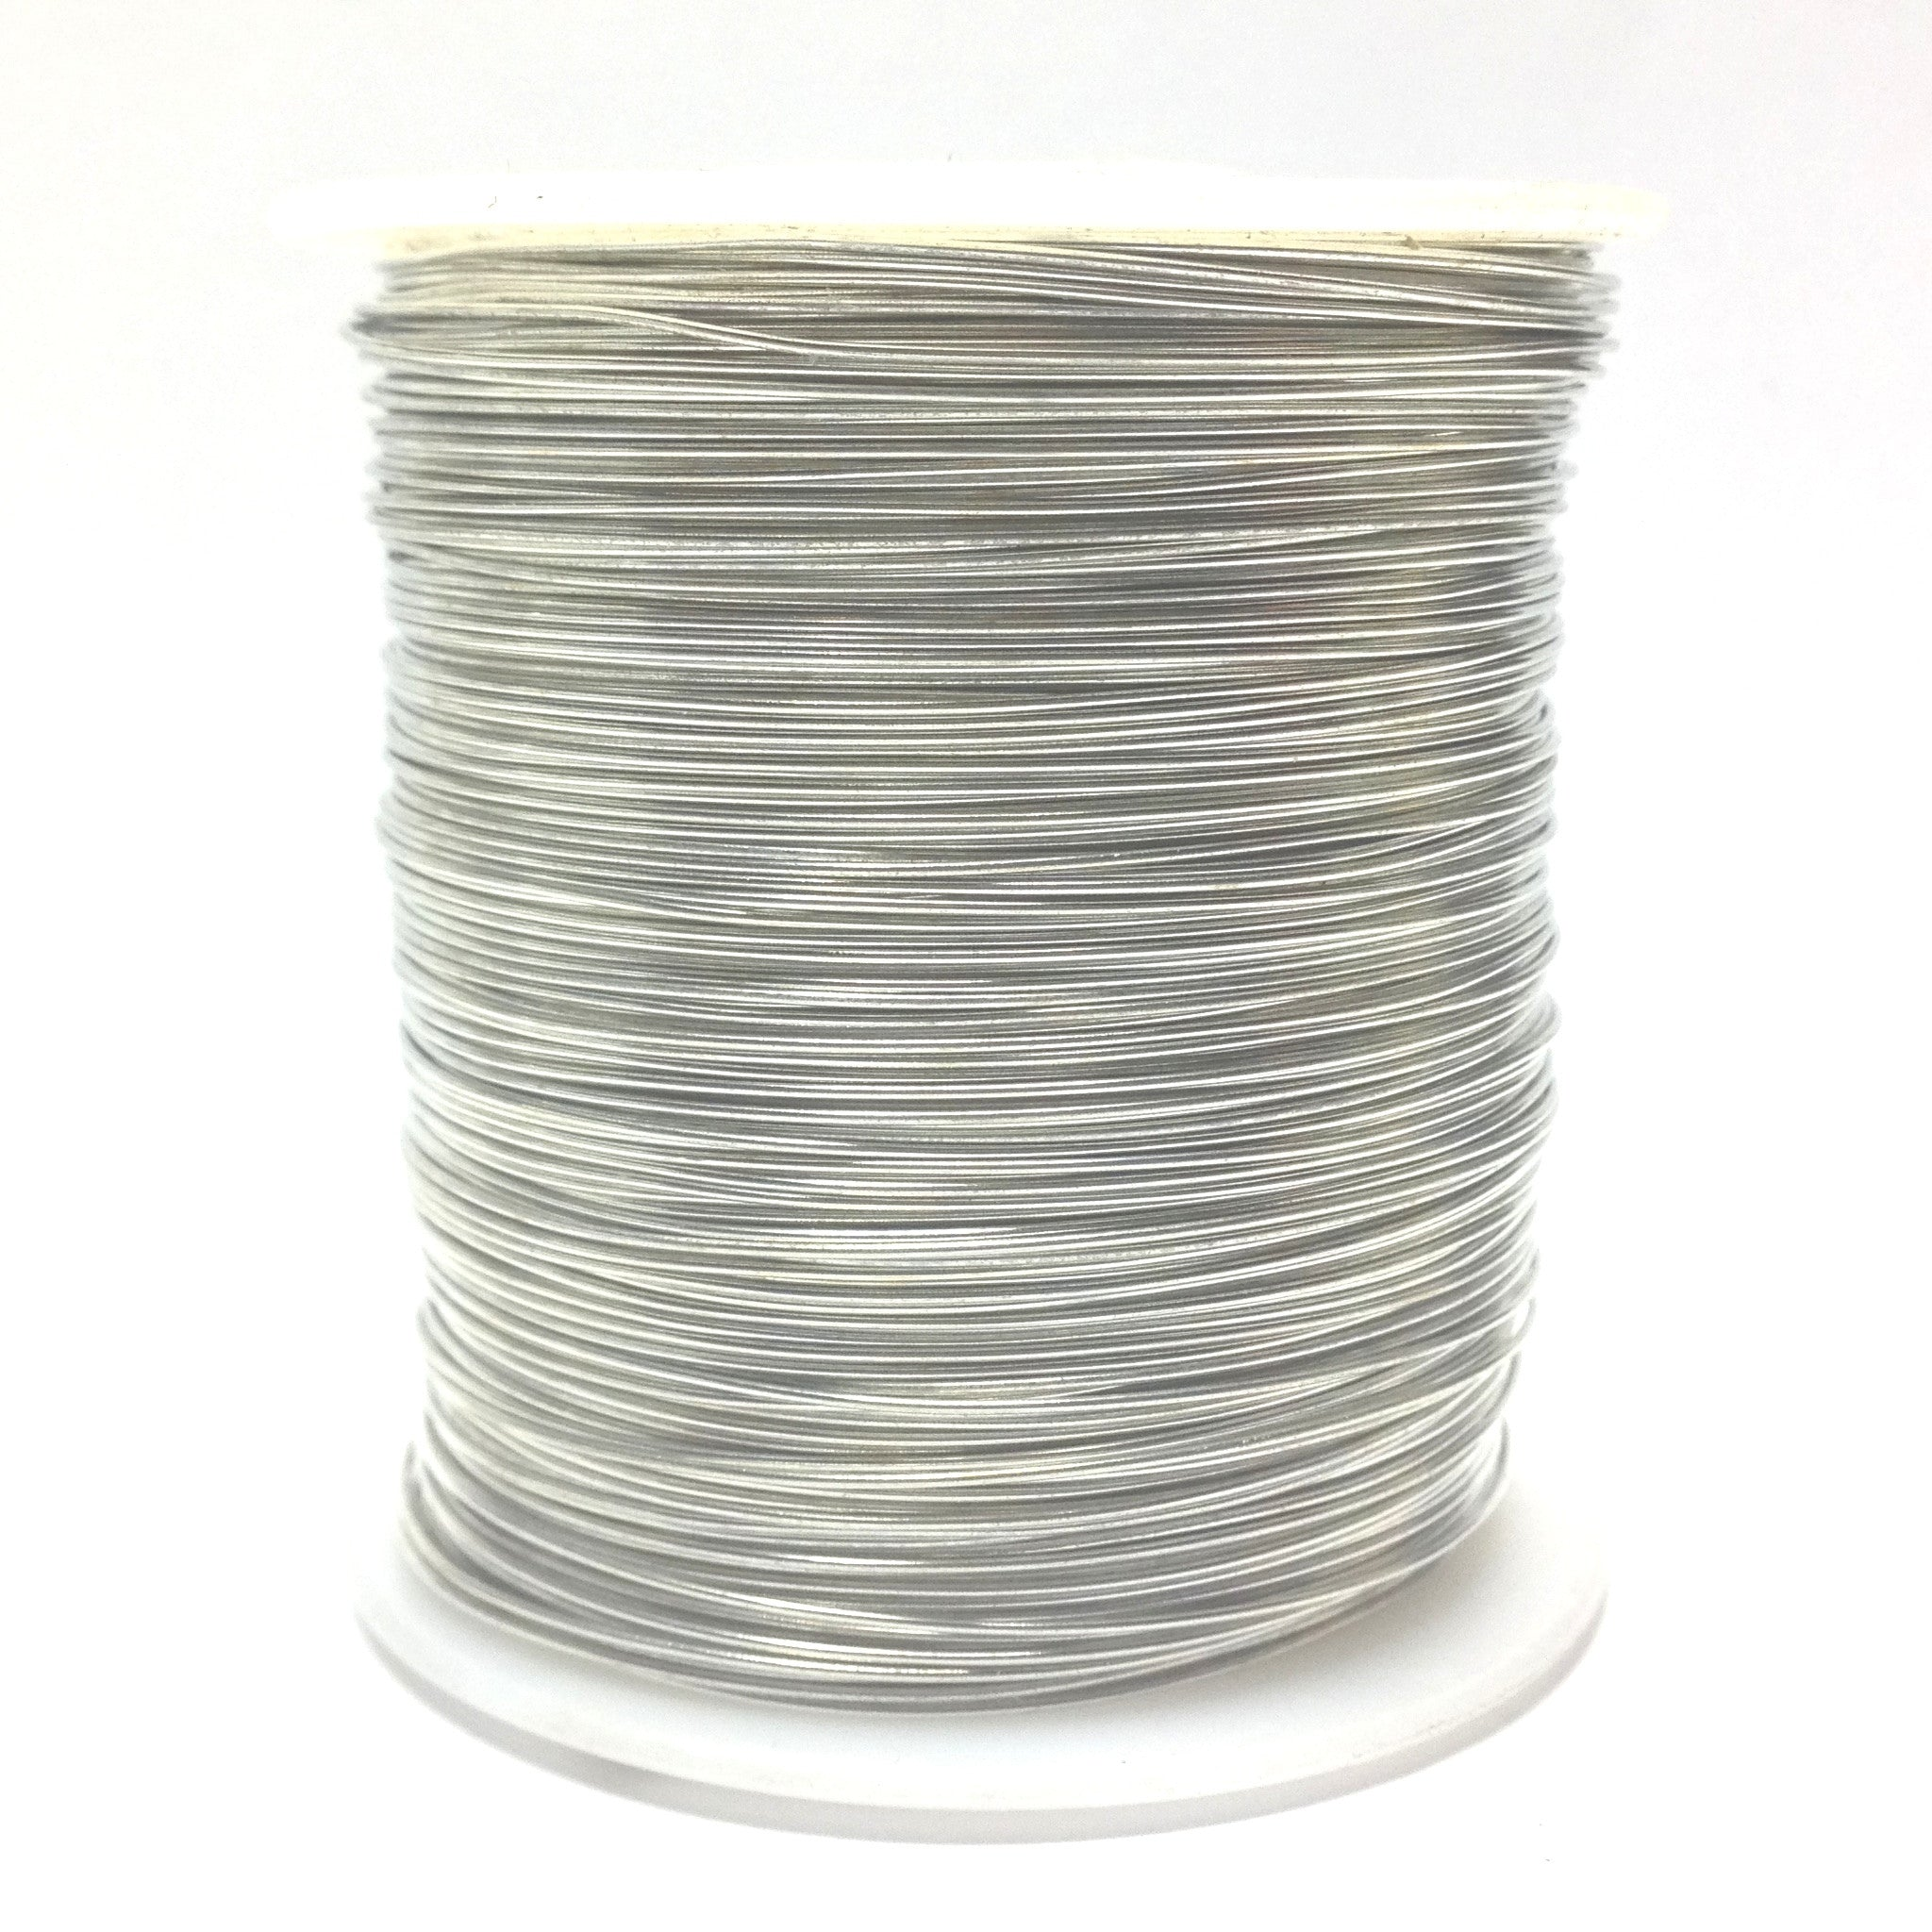 #30 Tinned Copper (T) Wire 1 Lb Spool (1 piece)